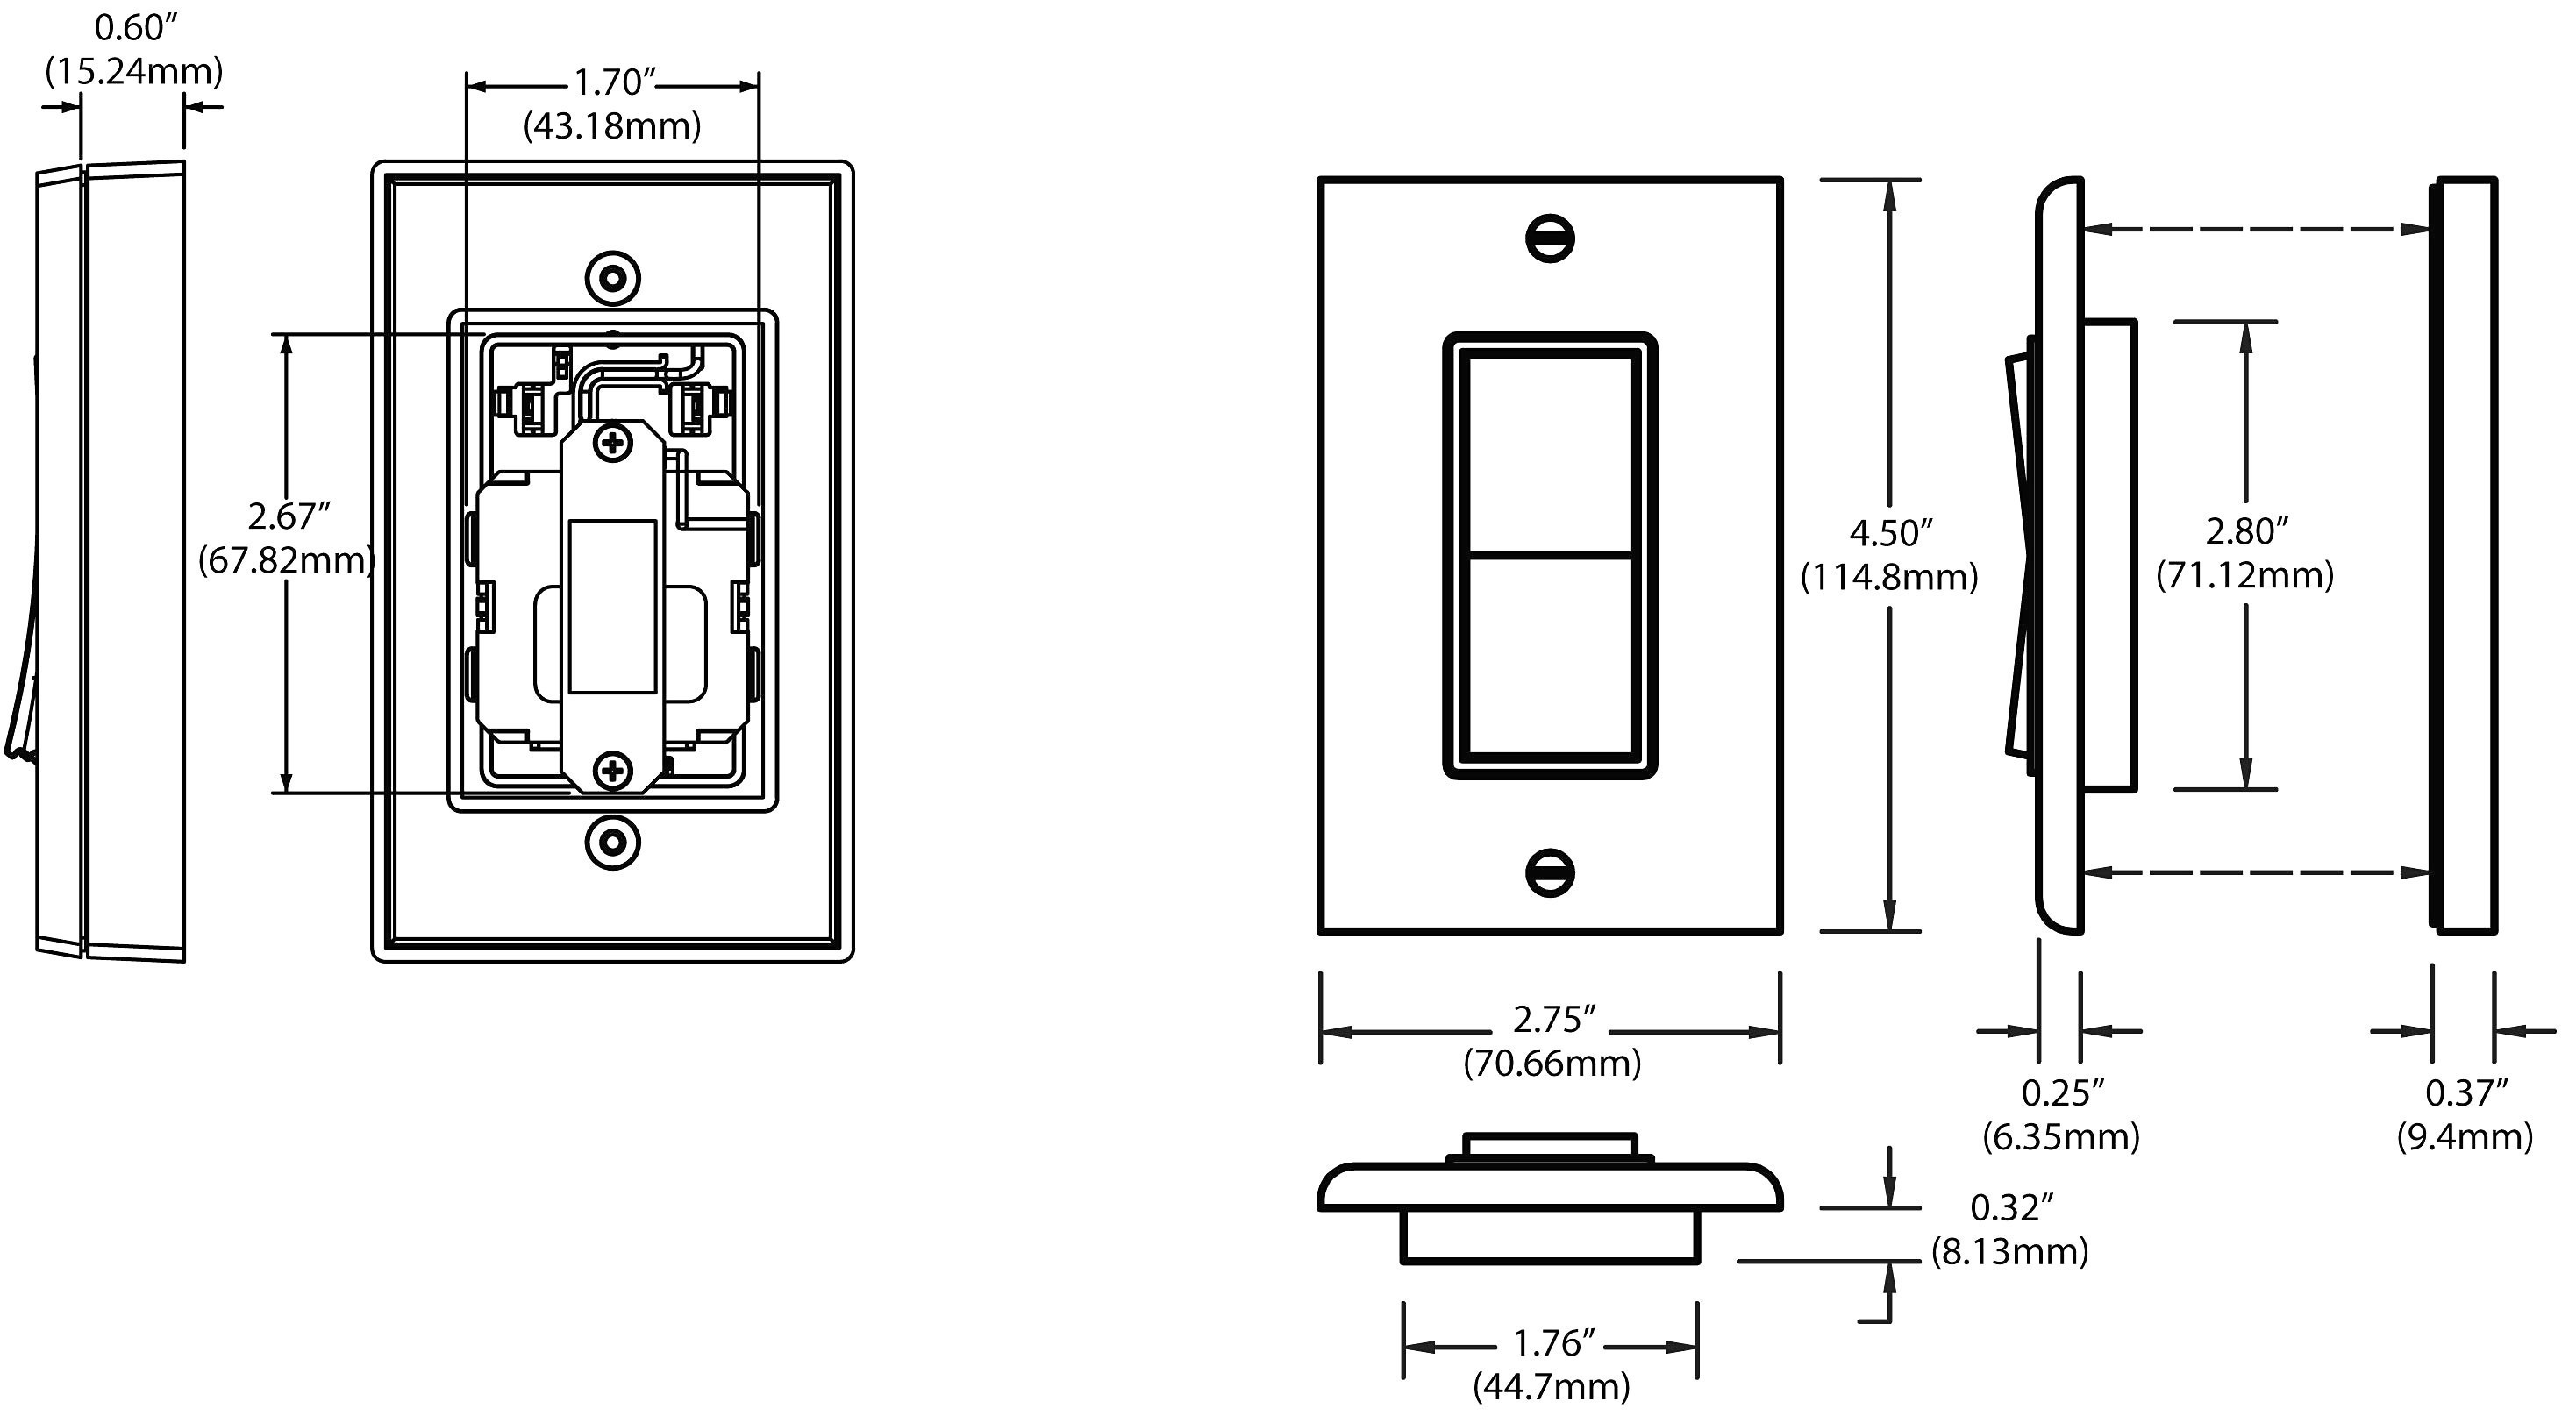 Double Decora Light Switch Wiring Diagram - Wiring Diagram Description - Leviton Double Pole Switch Wiring Diagram